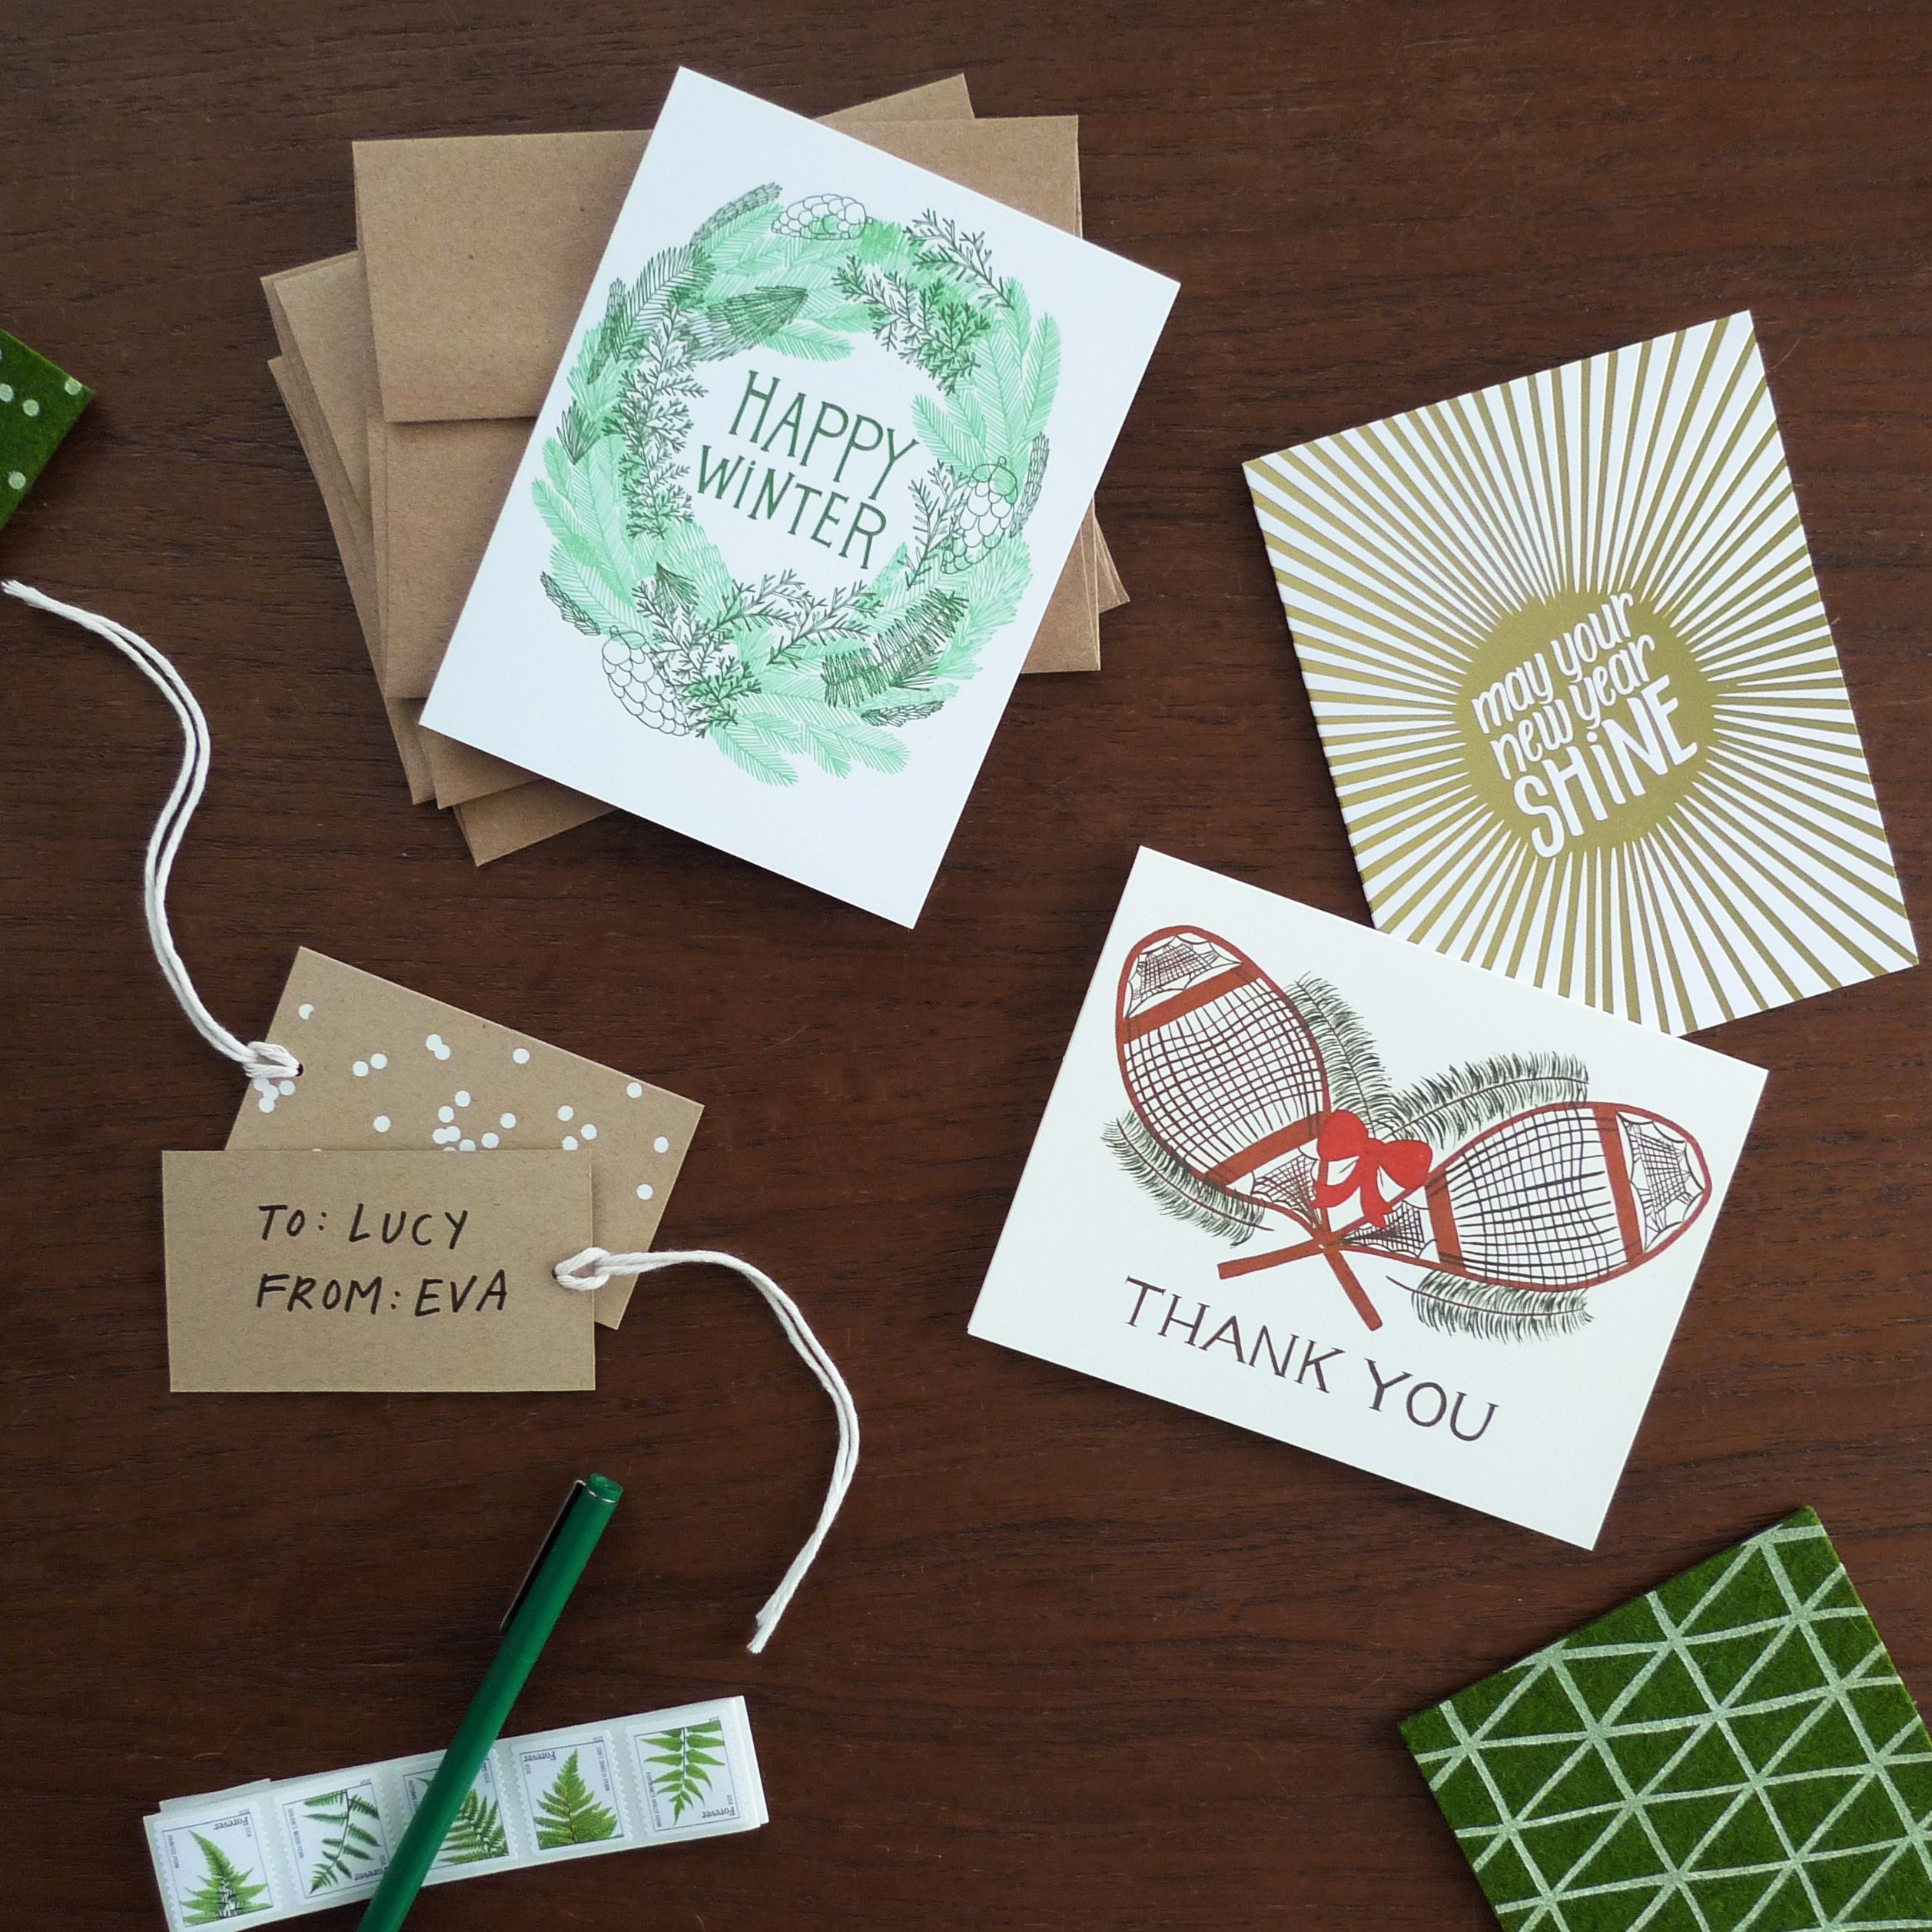 7 Easy Tips For Sending Holiday Season Snail Mail (With